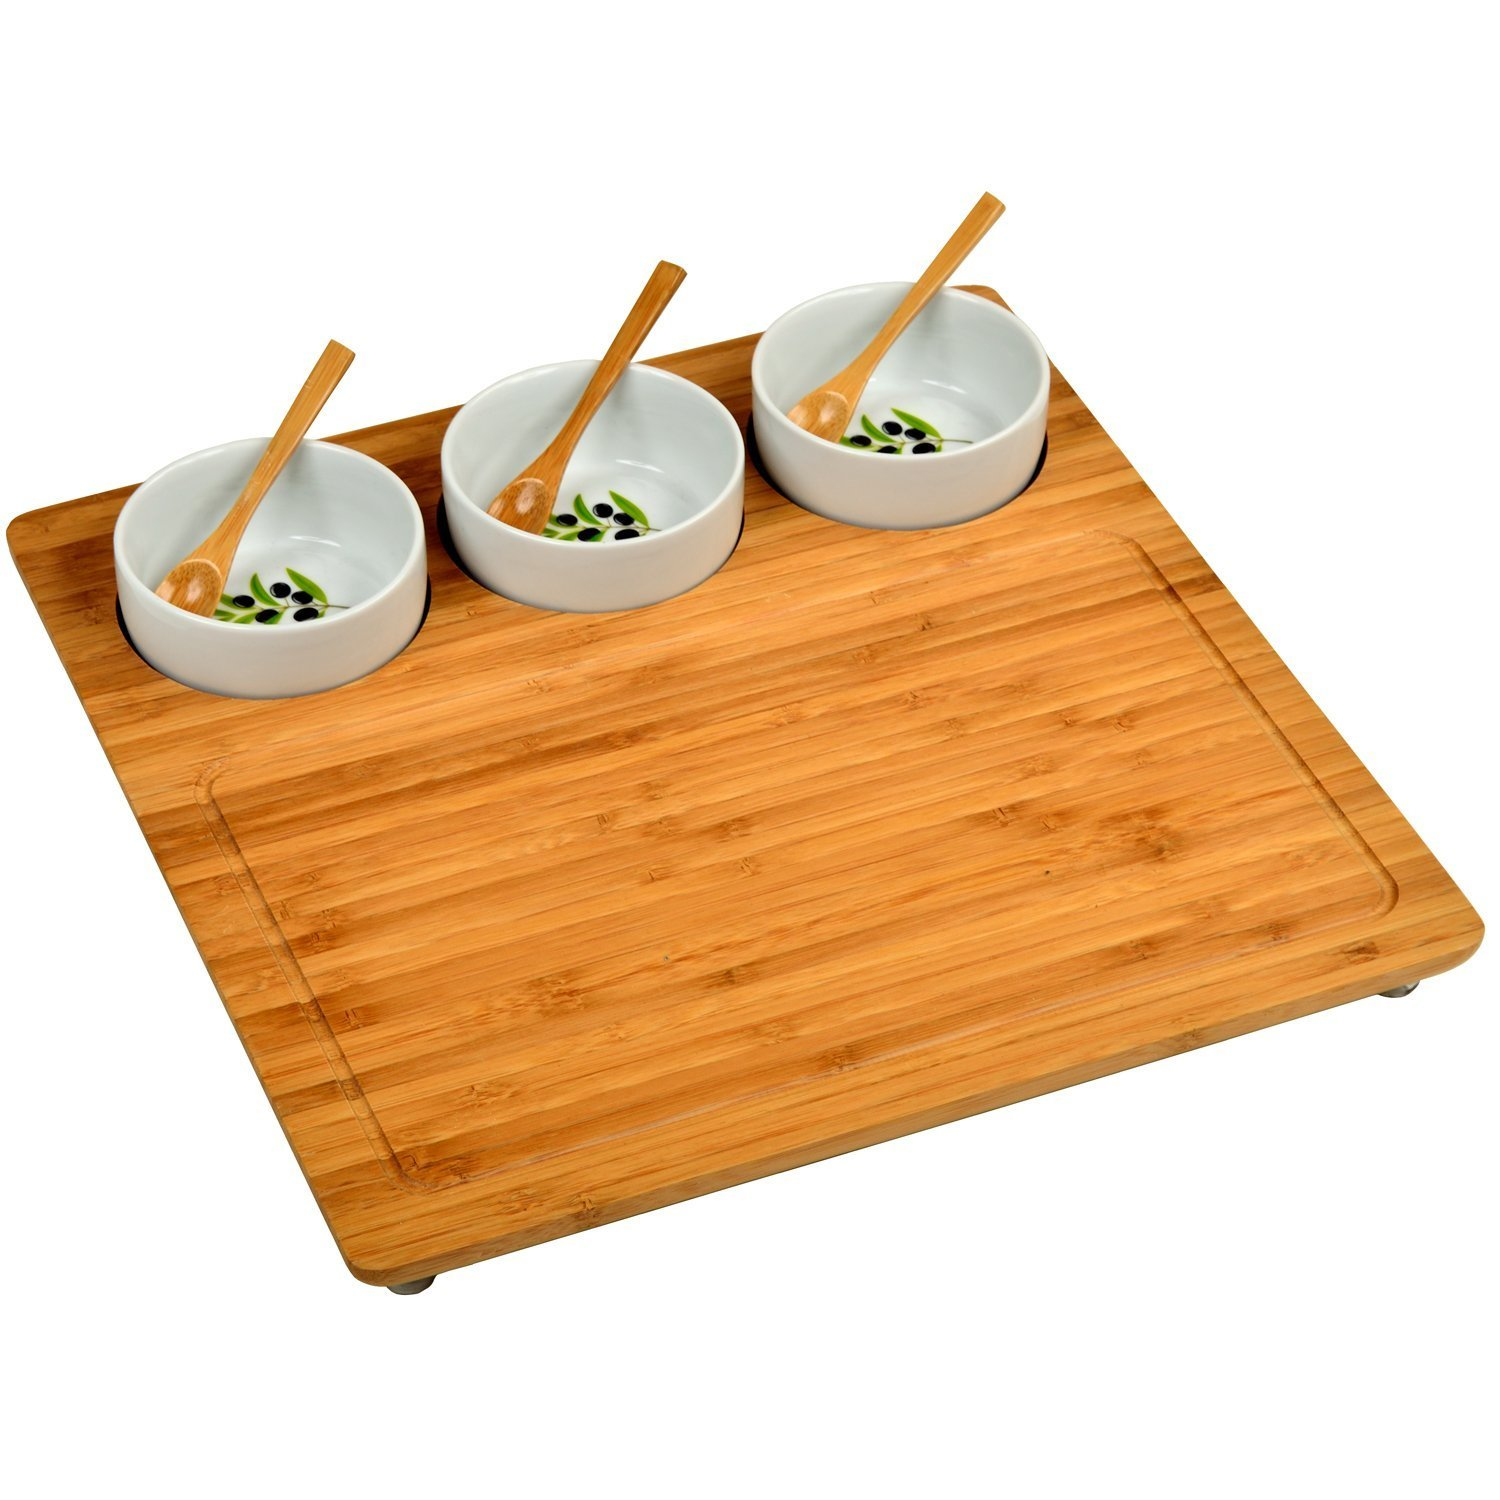 Serving Tray Square Bamboo 3 Ceramic Bowls Spoons Entertaining Party Wine Cheese